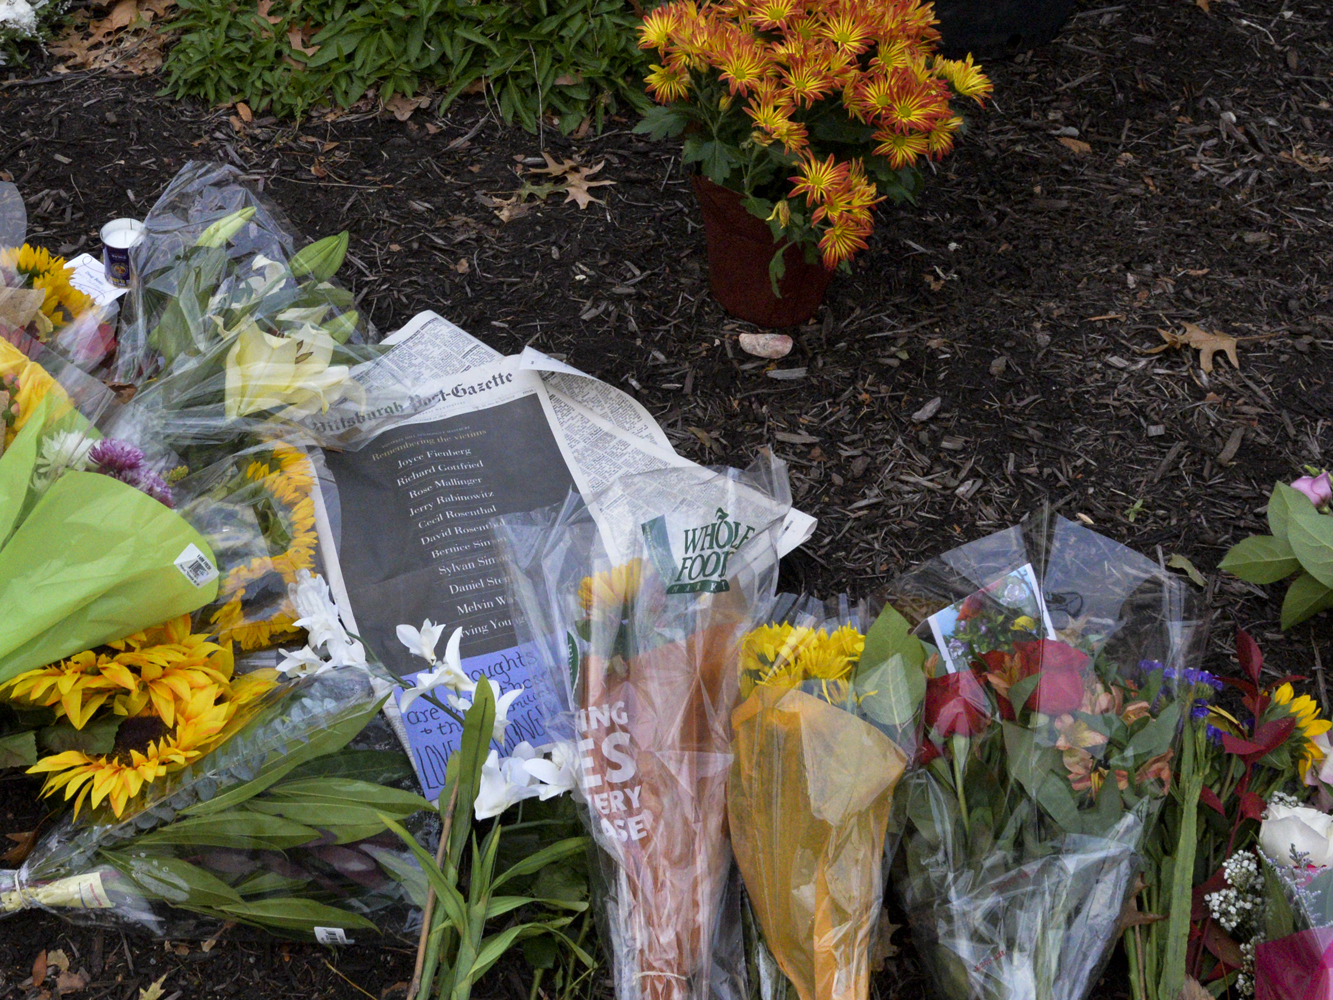 Mourners placed flowers, notes and the front page of the Pittsburgh Post-Gazette, which lists each victim's name outside Tree of Life Synagogue.